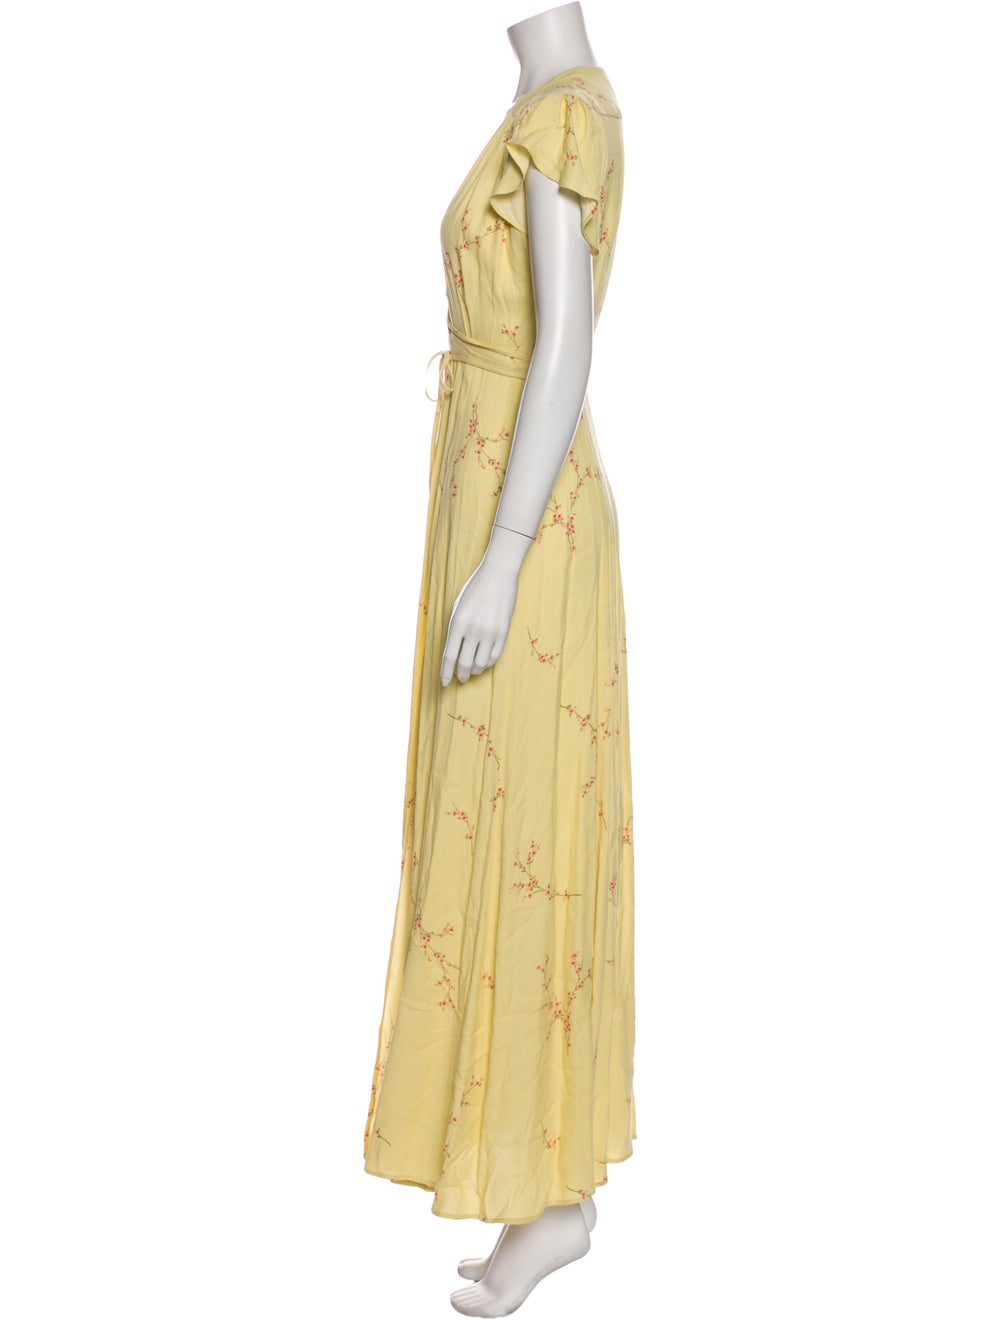 Reformation Floral Print Long Dress Yellow - image 2